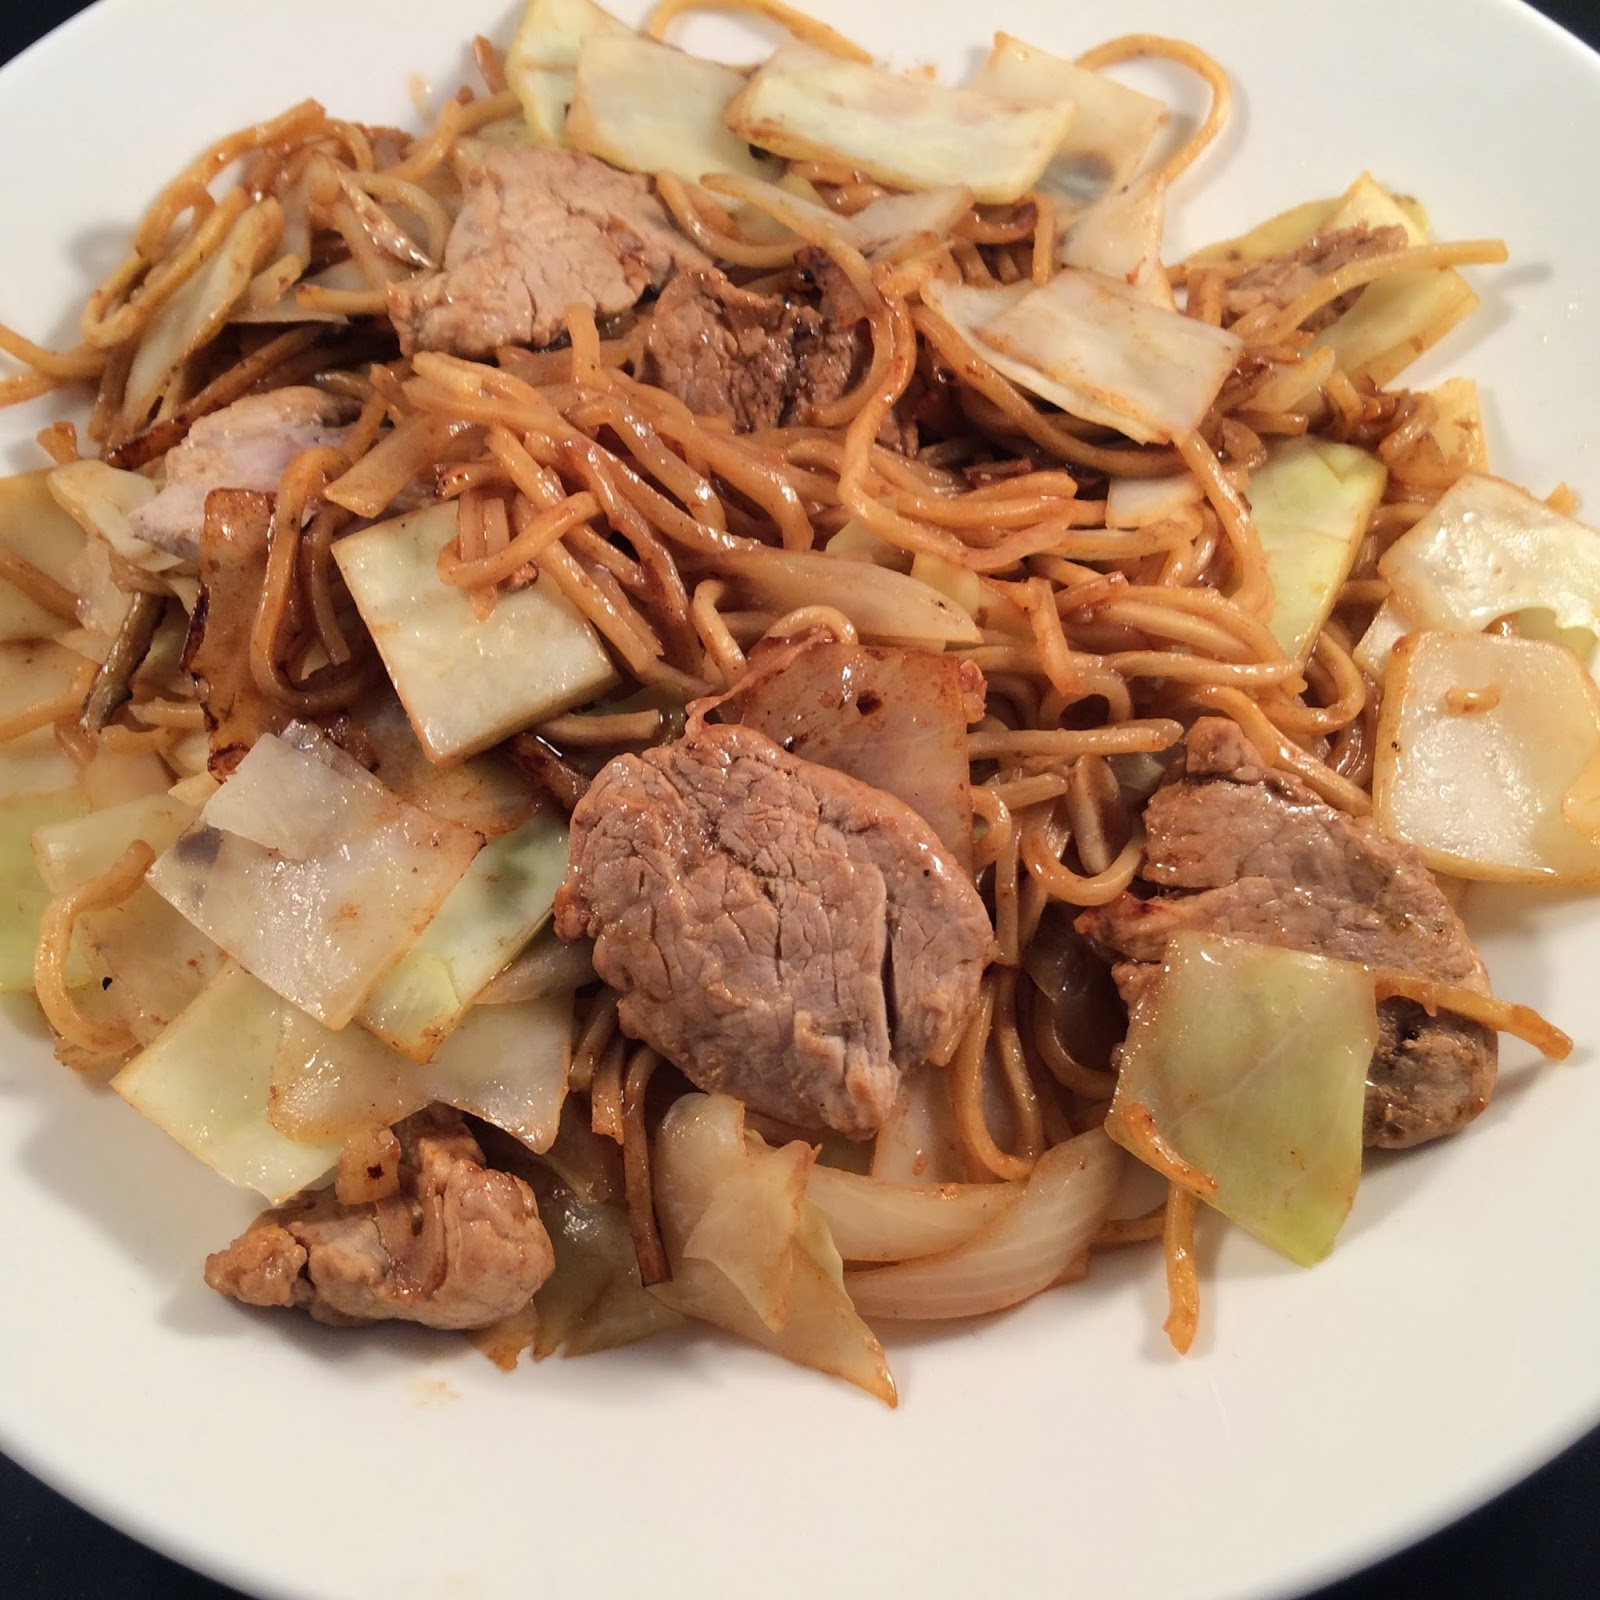 stir-fry noodles, E-Fu, Yee-Fu, recipe, pork, cabbage, noodles